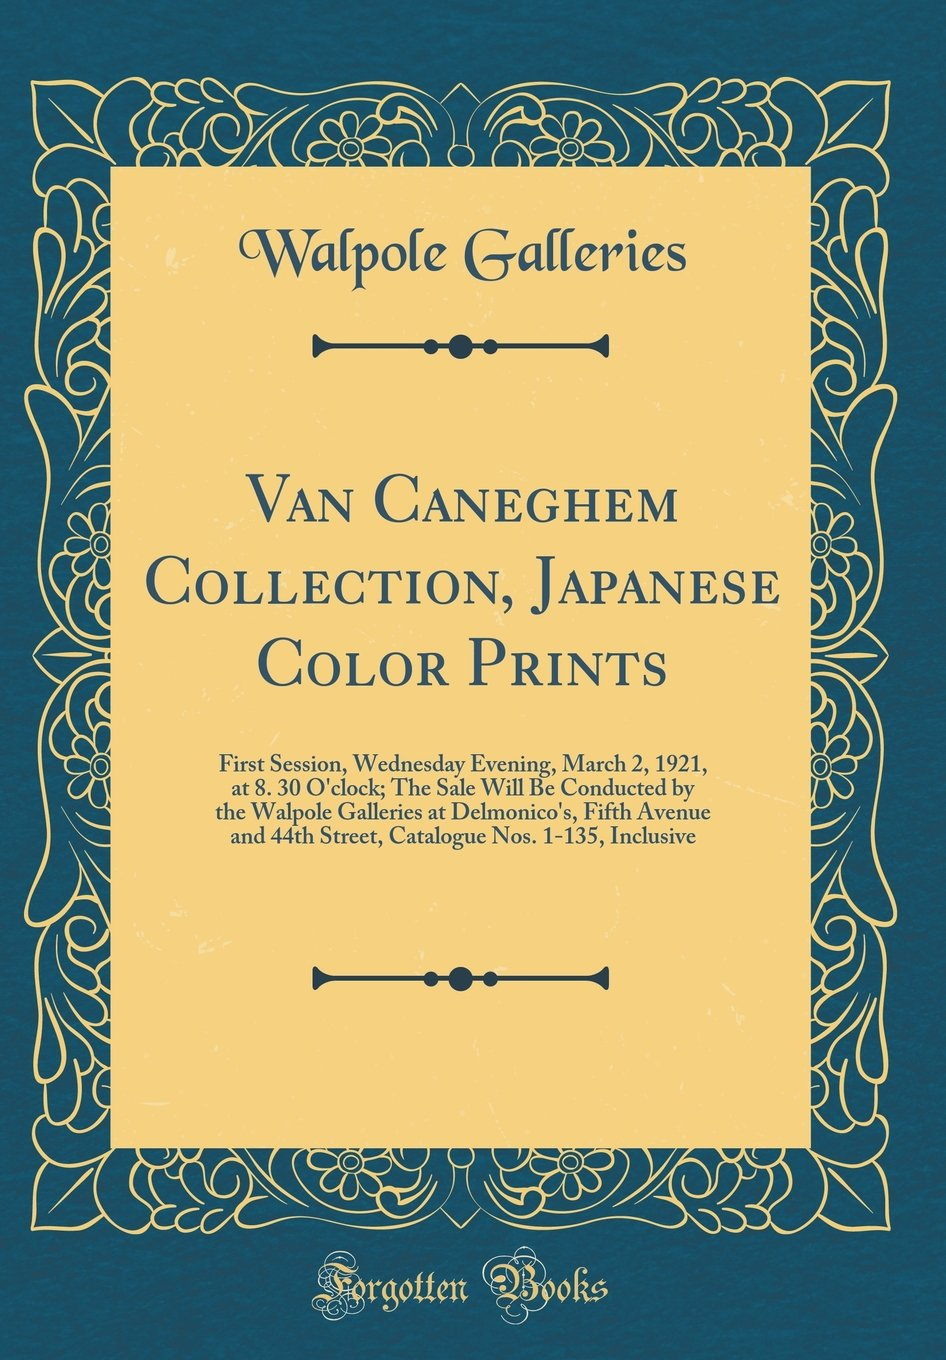 Read Online Van Caneghem Collection, Japanese Color Prints: First Session, Wednesday Evening, March 2, 1921, at 8. 30 O'Clock; The Sale Will Be Conducted by the ... 44th Street, Catalogue Nos. 1-135, Inclusive ebook